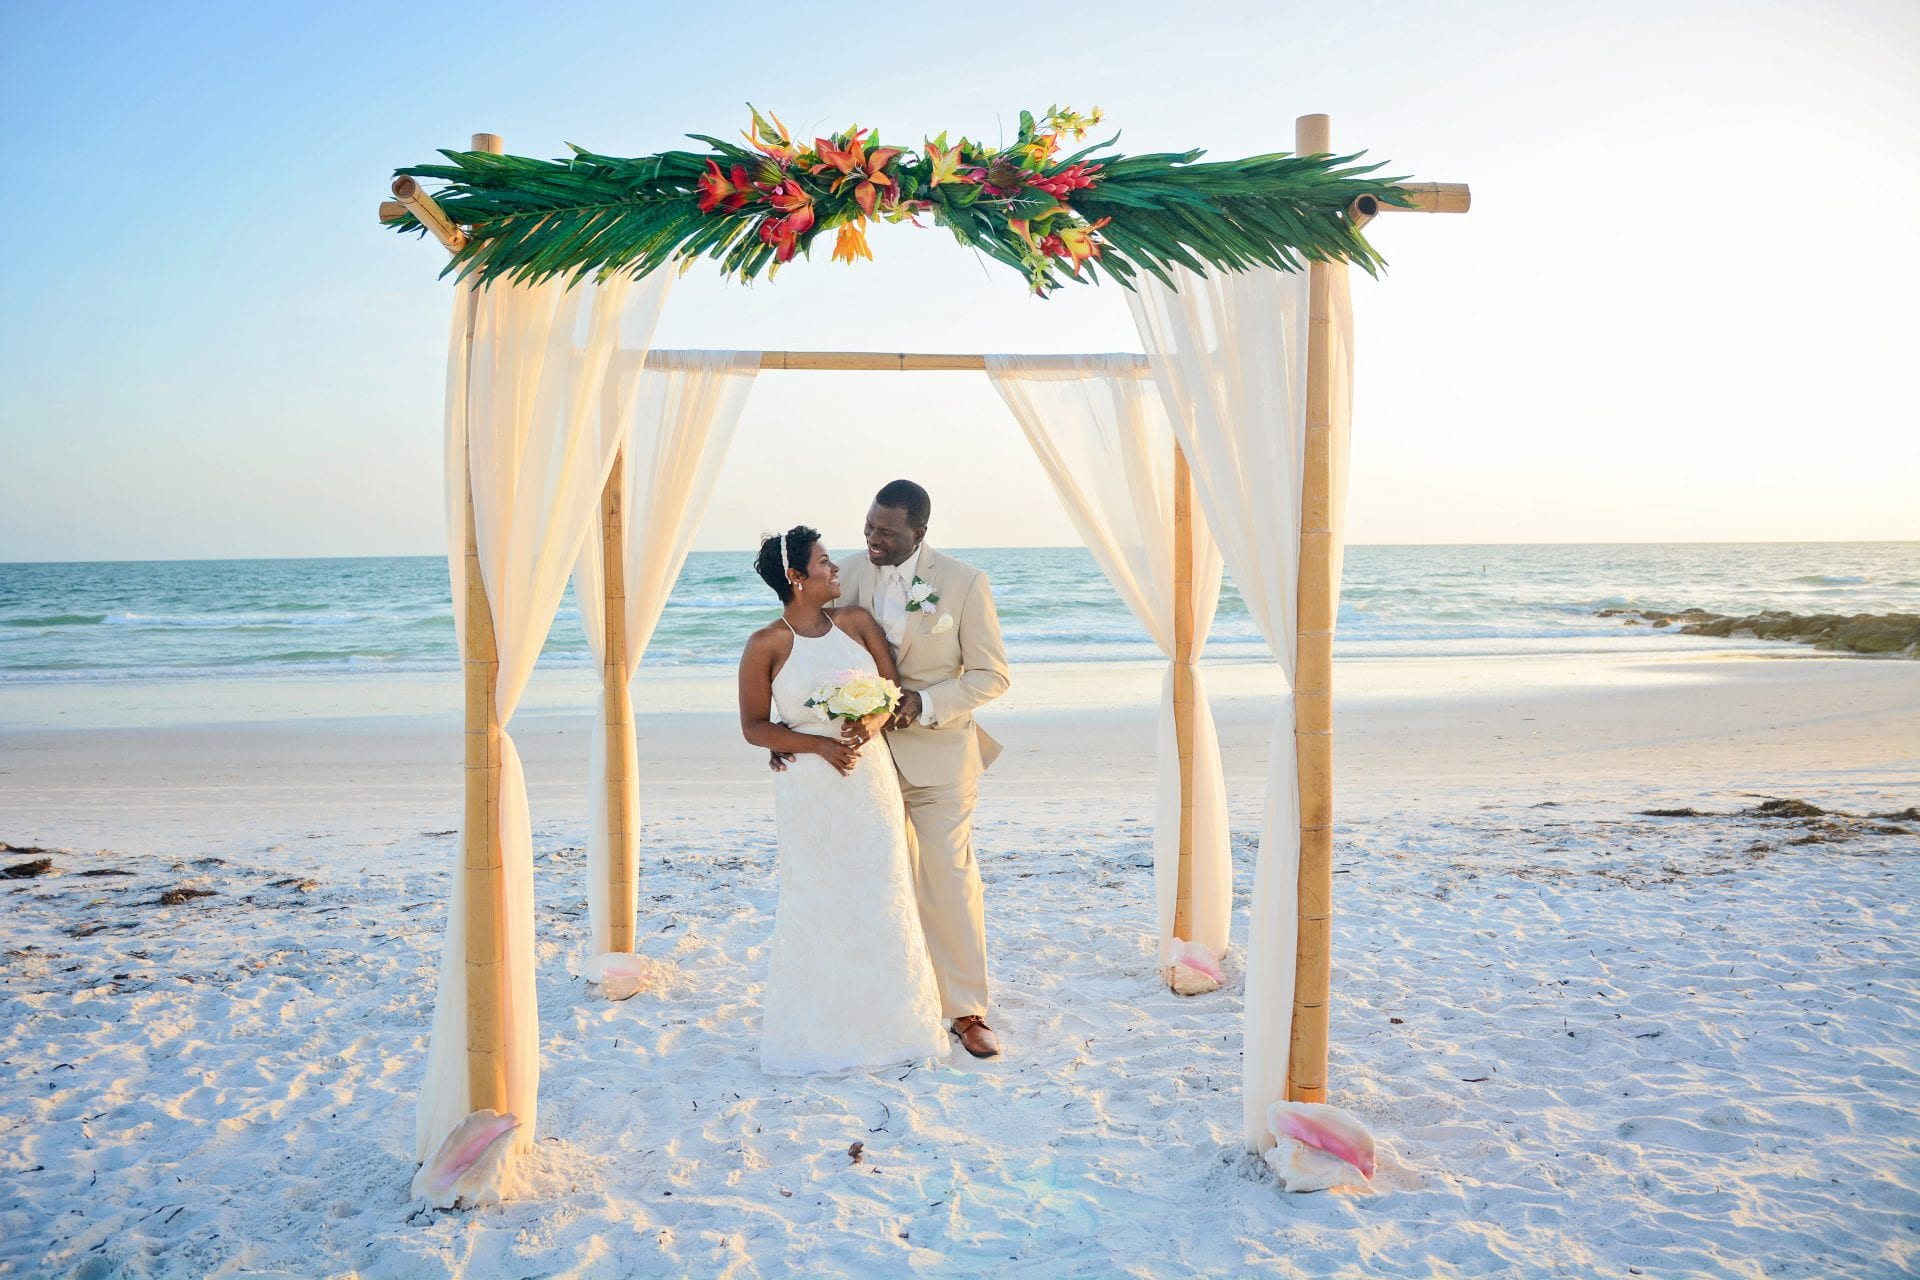 Couple saying vows under beach wedding canopy